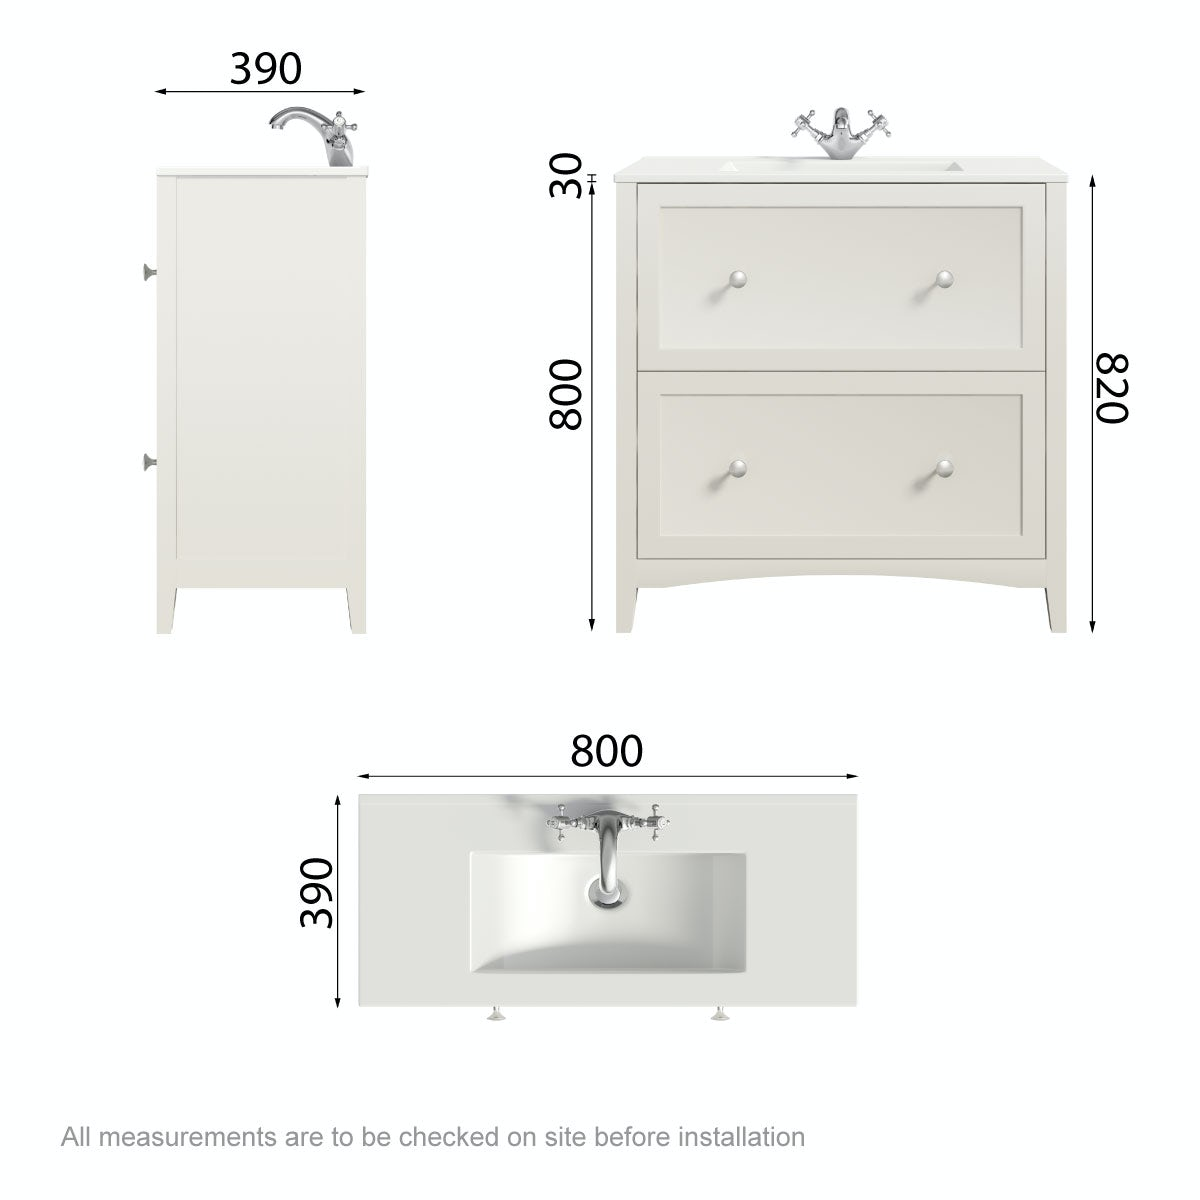 Dimensions for The Bath Co. Camberley ivory floor drawer unit with basin 800mm